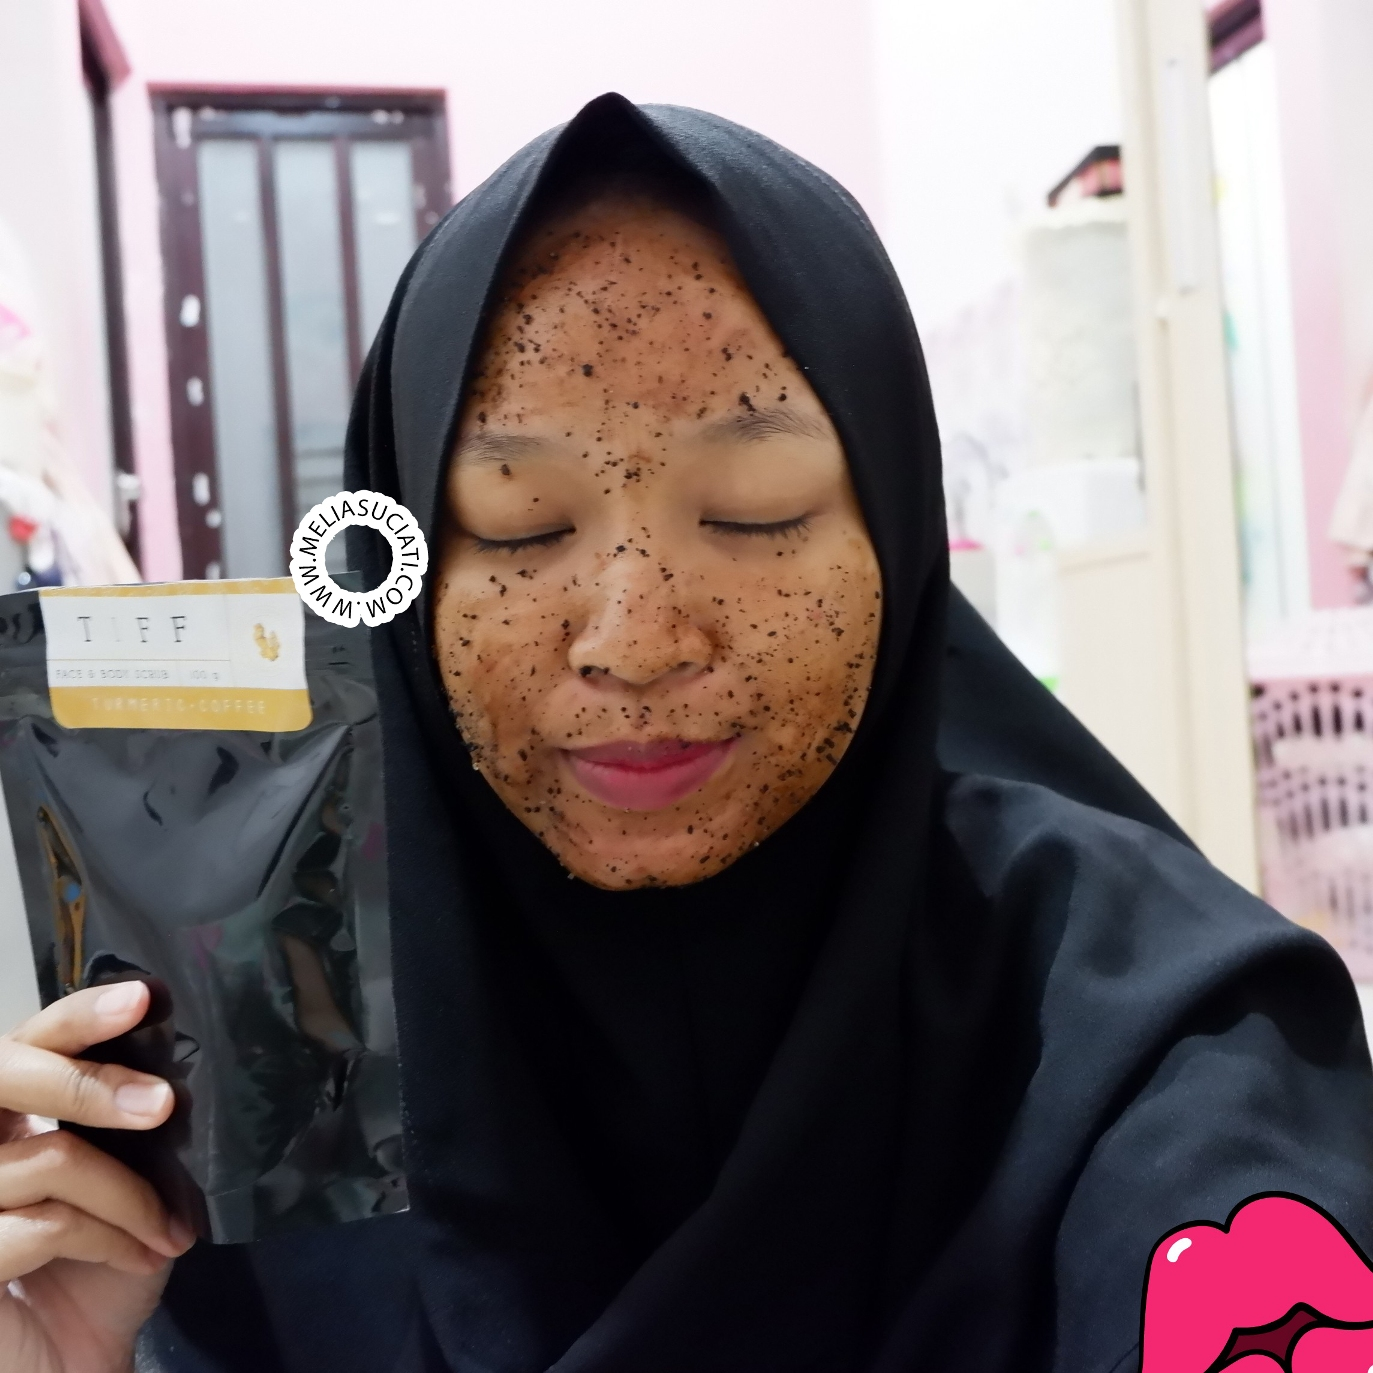 REVIEW TIFF Body and Sacre Skin For Acne Series